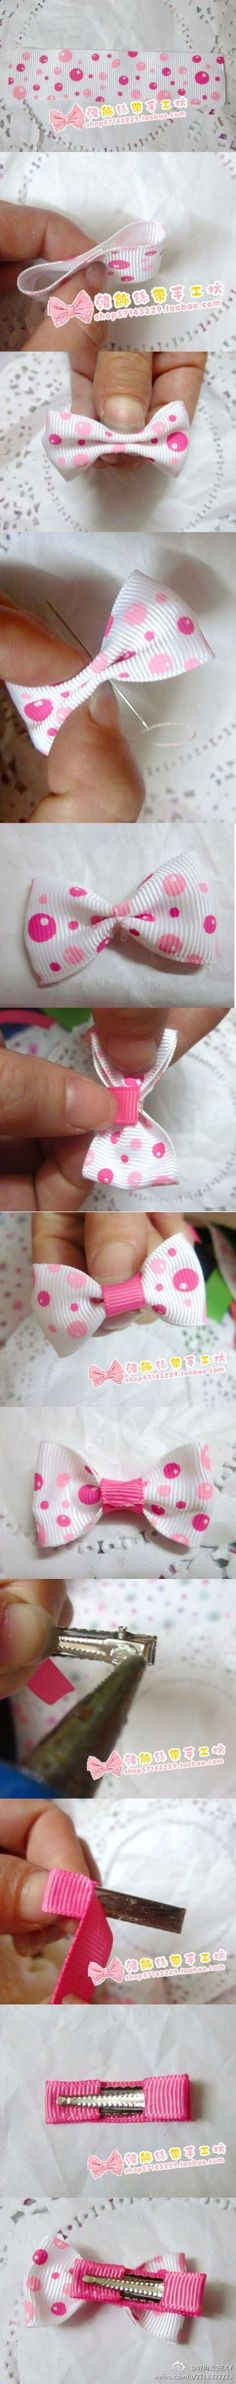 Could have saved alot of money years ago with this one! Small simple hair bow - can make into magnets